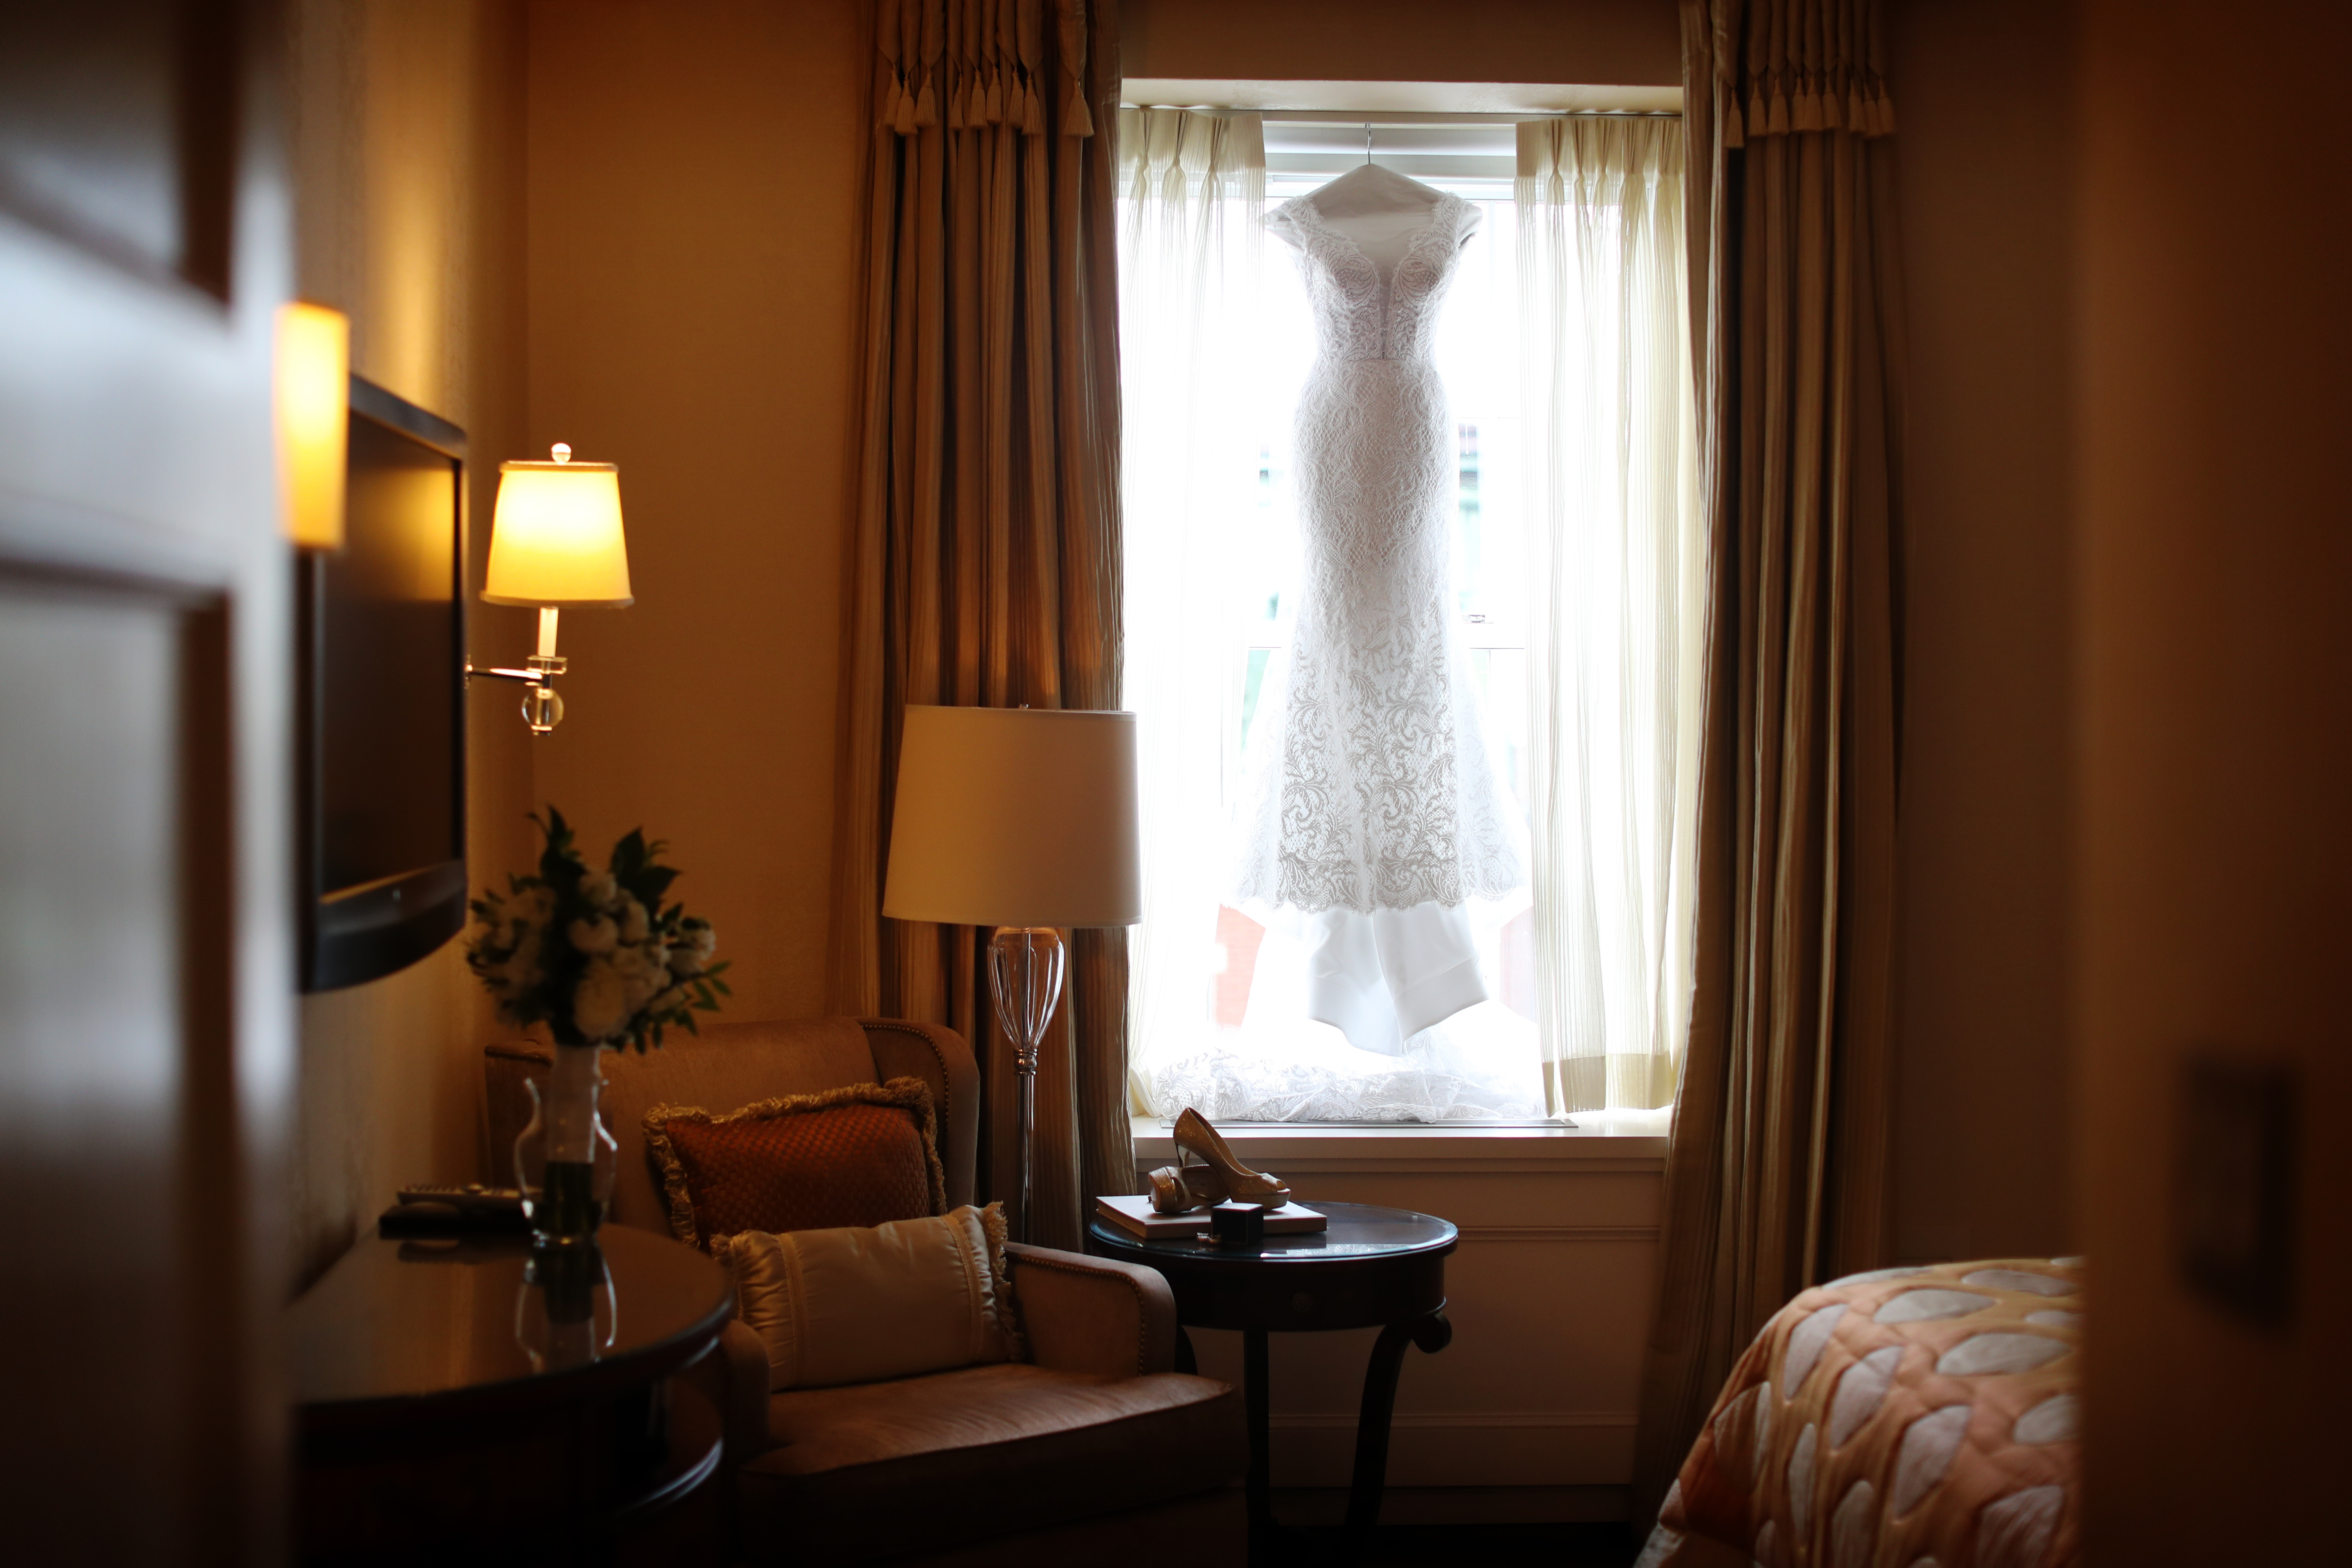 Our NYC based bride and groom got ready for their wedding at the beautiful Pierre Hotel next to Central Park. Read the blog for all the day of wedding details!